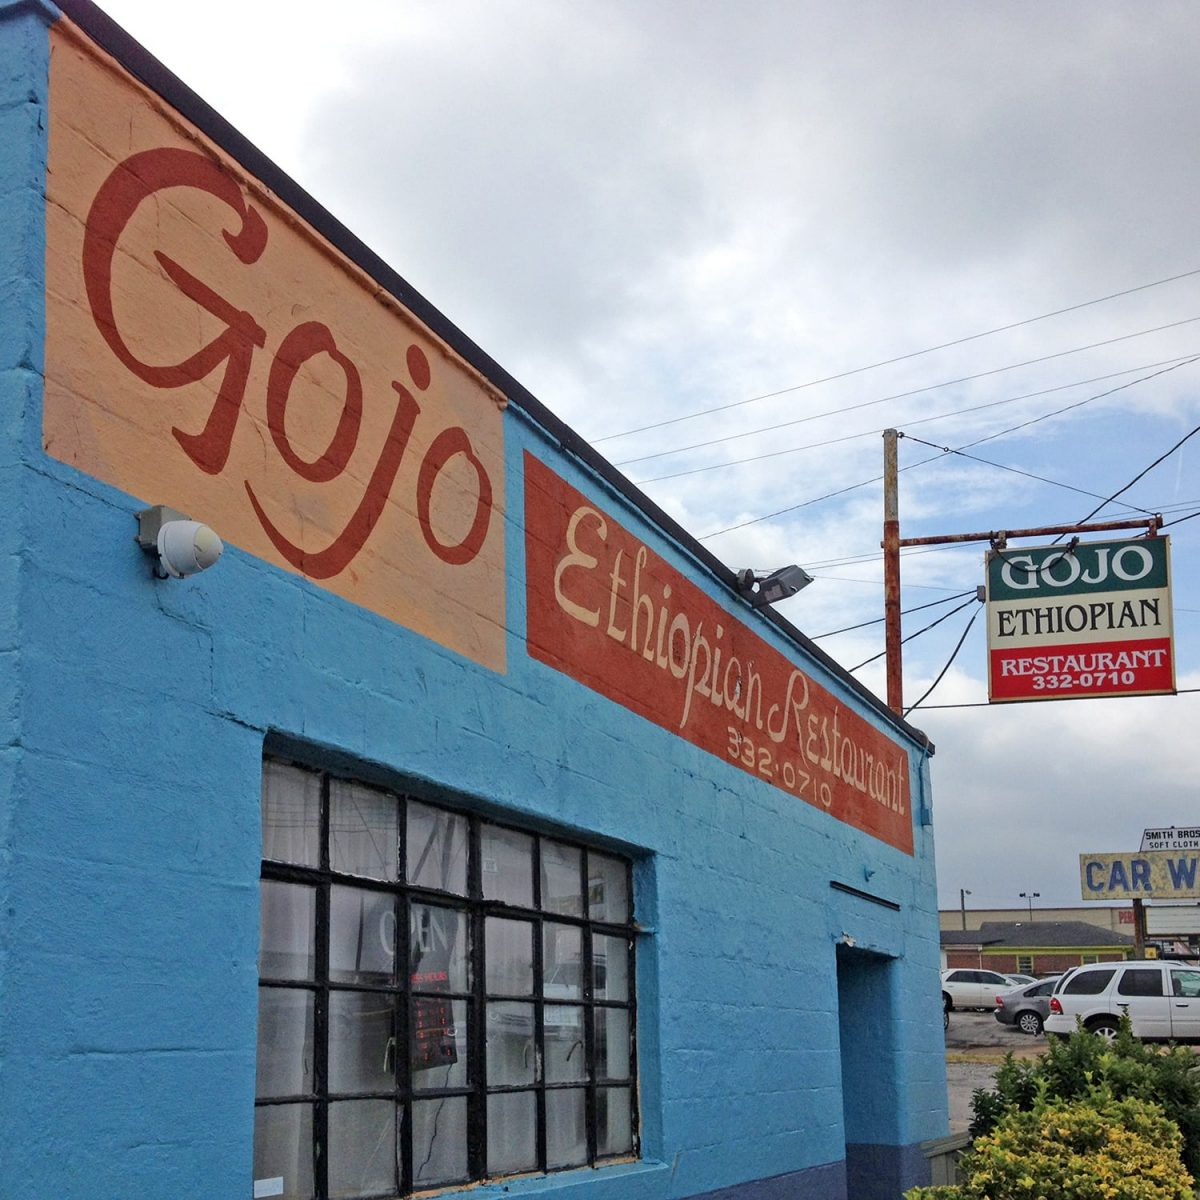 Gojo Ethiopian Cafe and Restaurant, on Thompson Lane in Nashville.